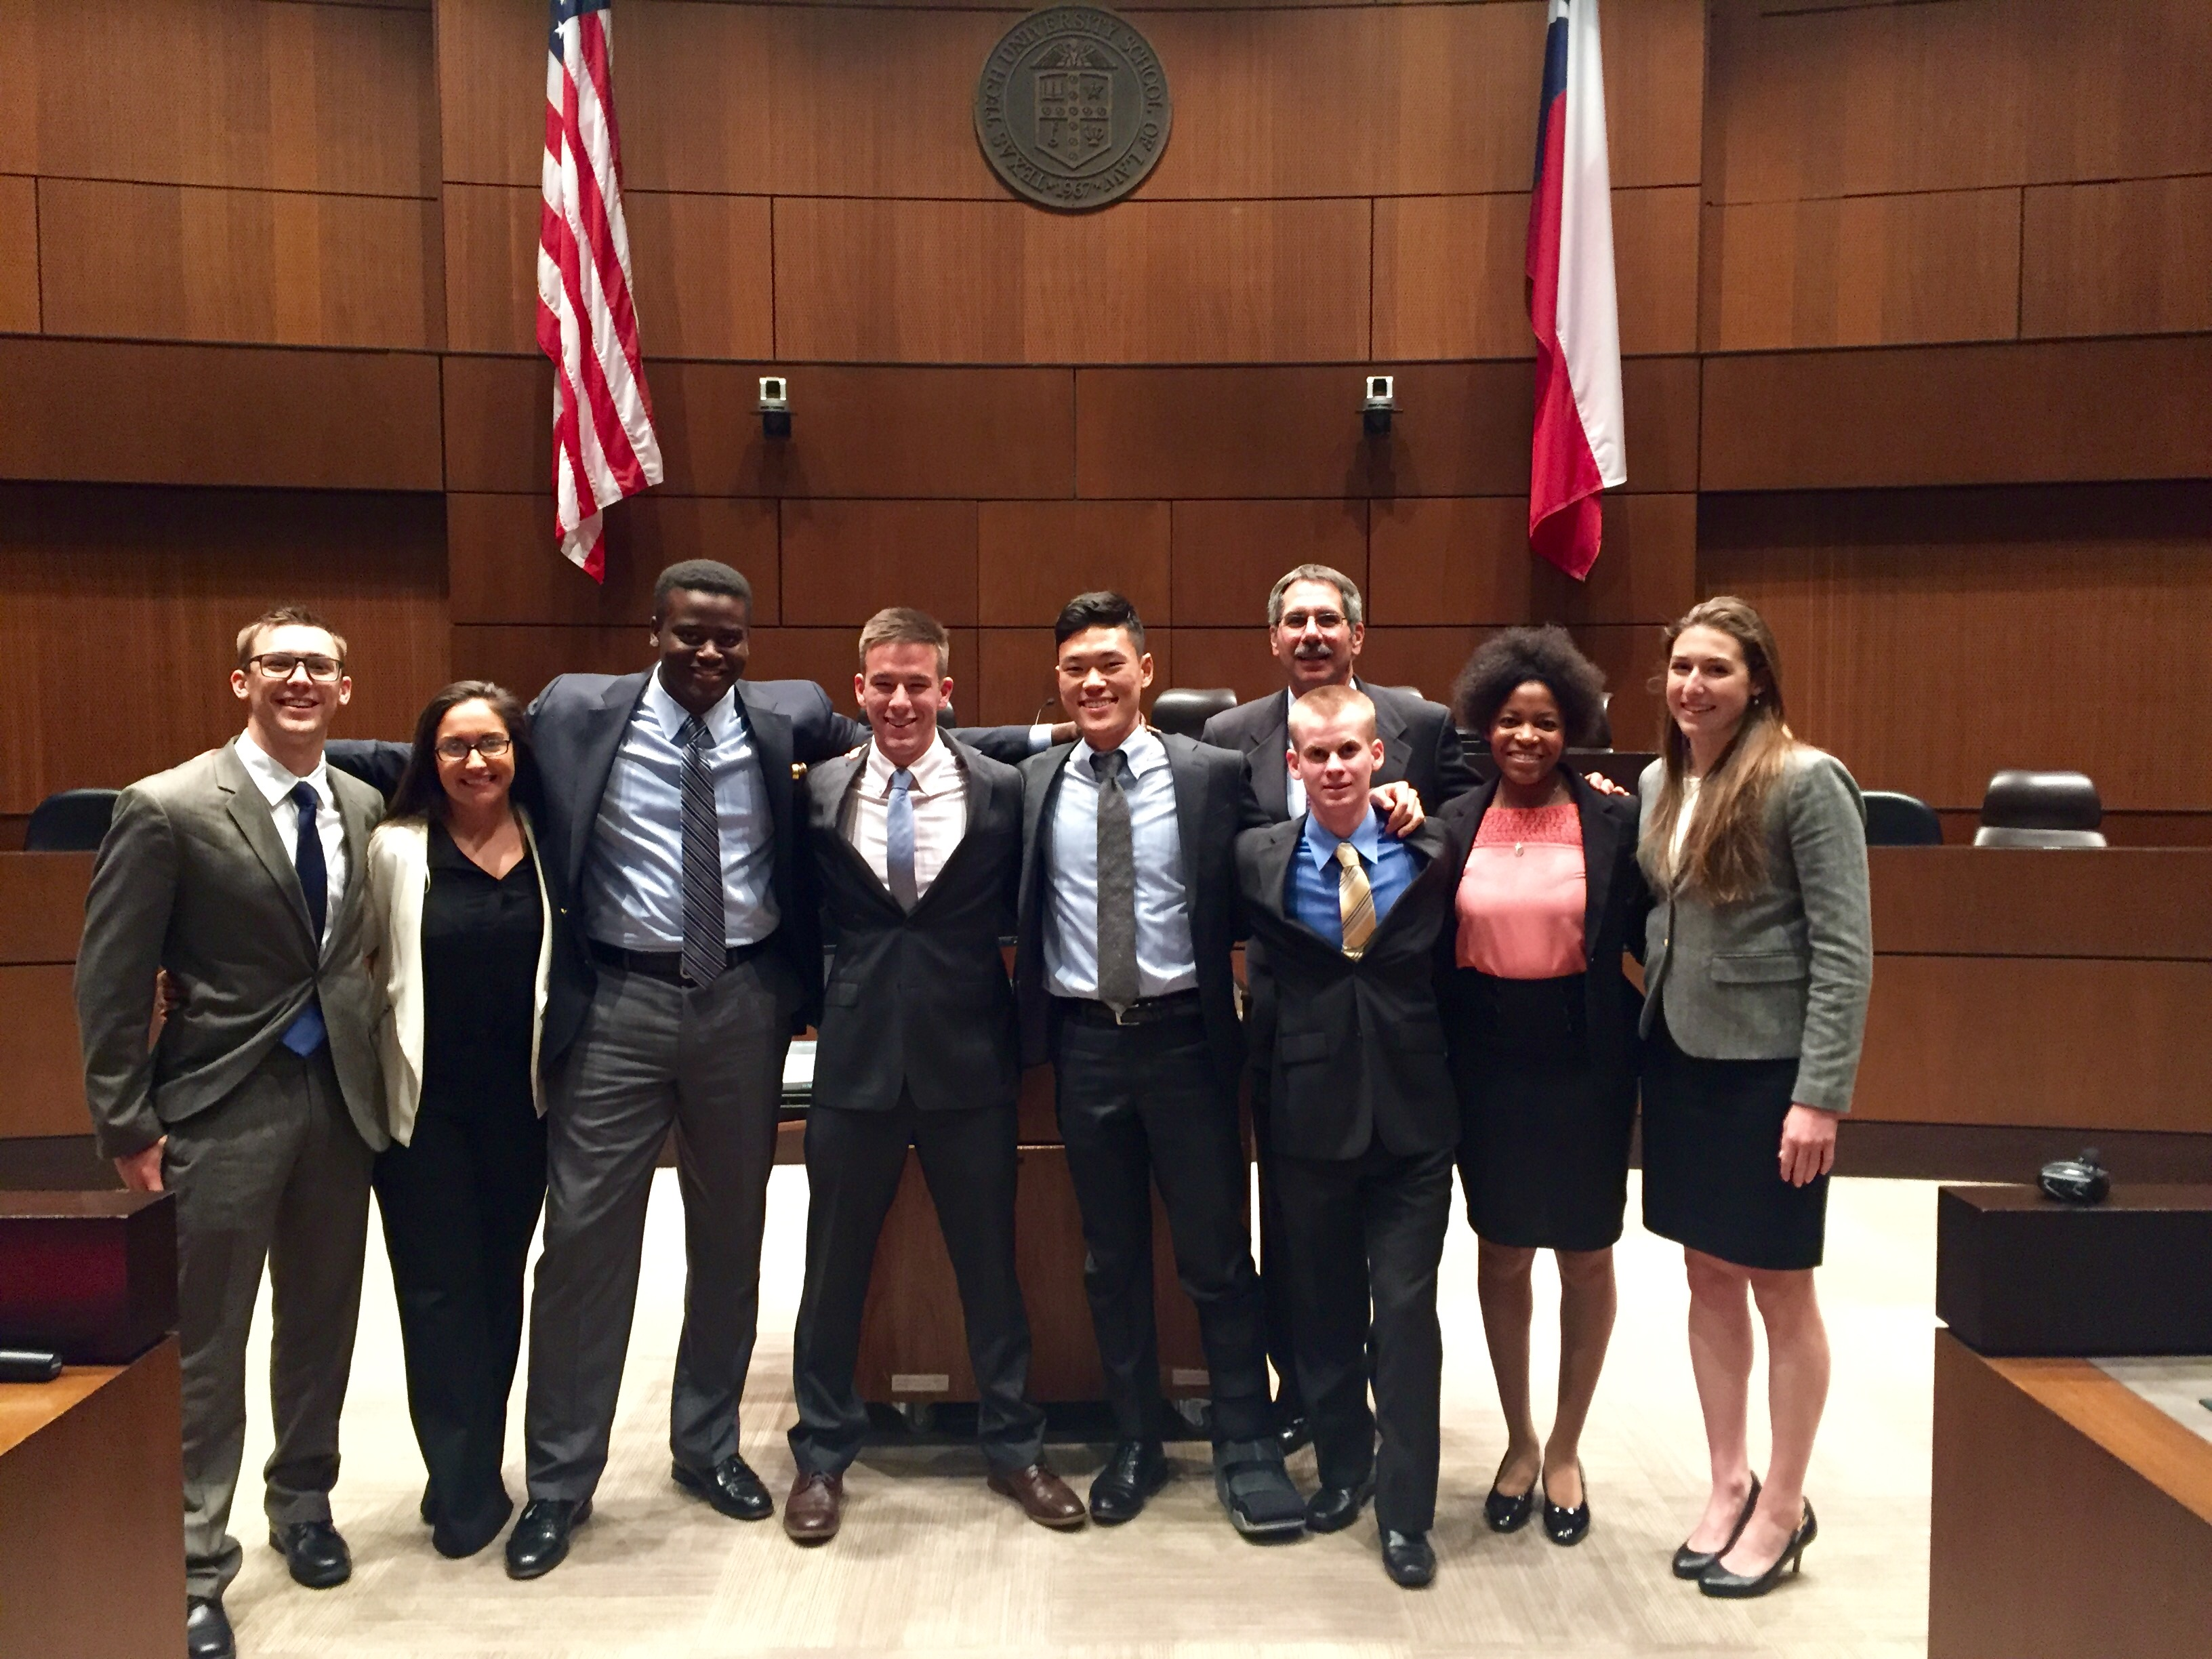 11 Team Photo- Courtroom